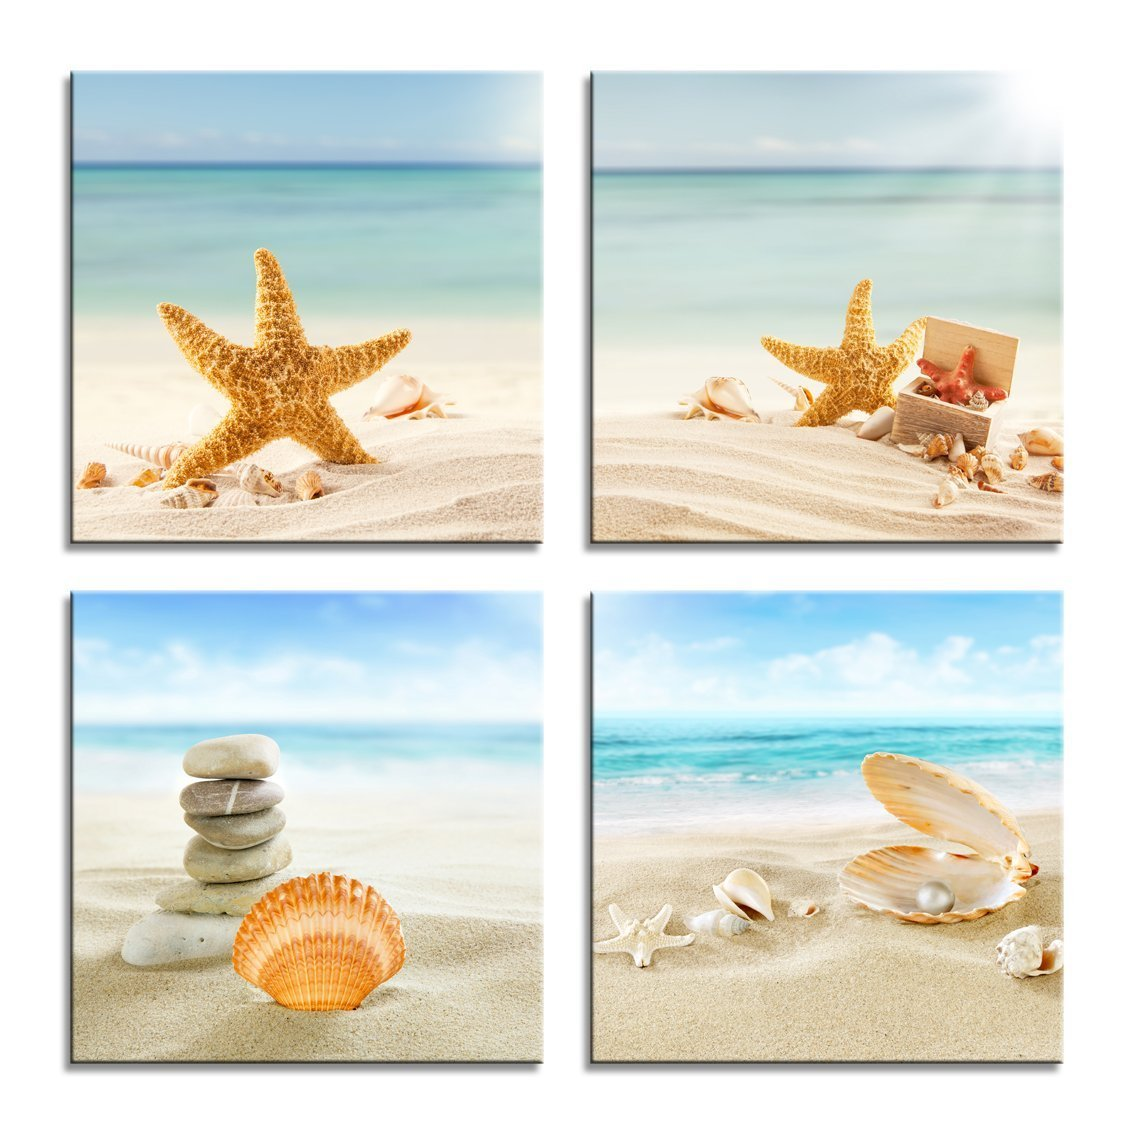 YPY Painting Beach Stone Sea Shells Sand Sunshine 4 PCS Wall Art Stretched Canvas Art Set Framed Ready to Hang (Blue, 12x12in) SS-4P-0001